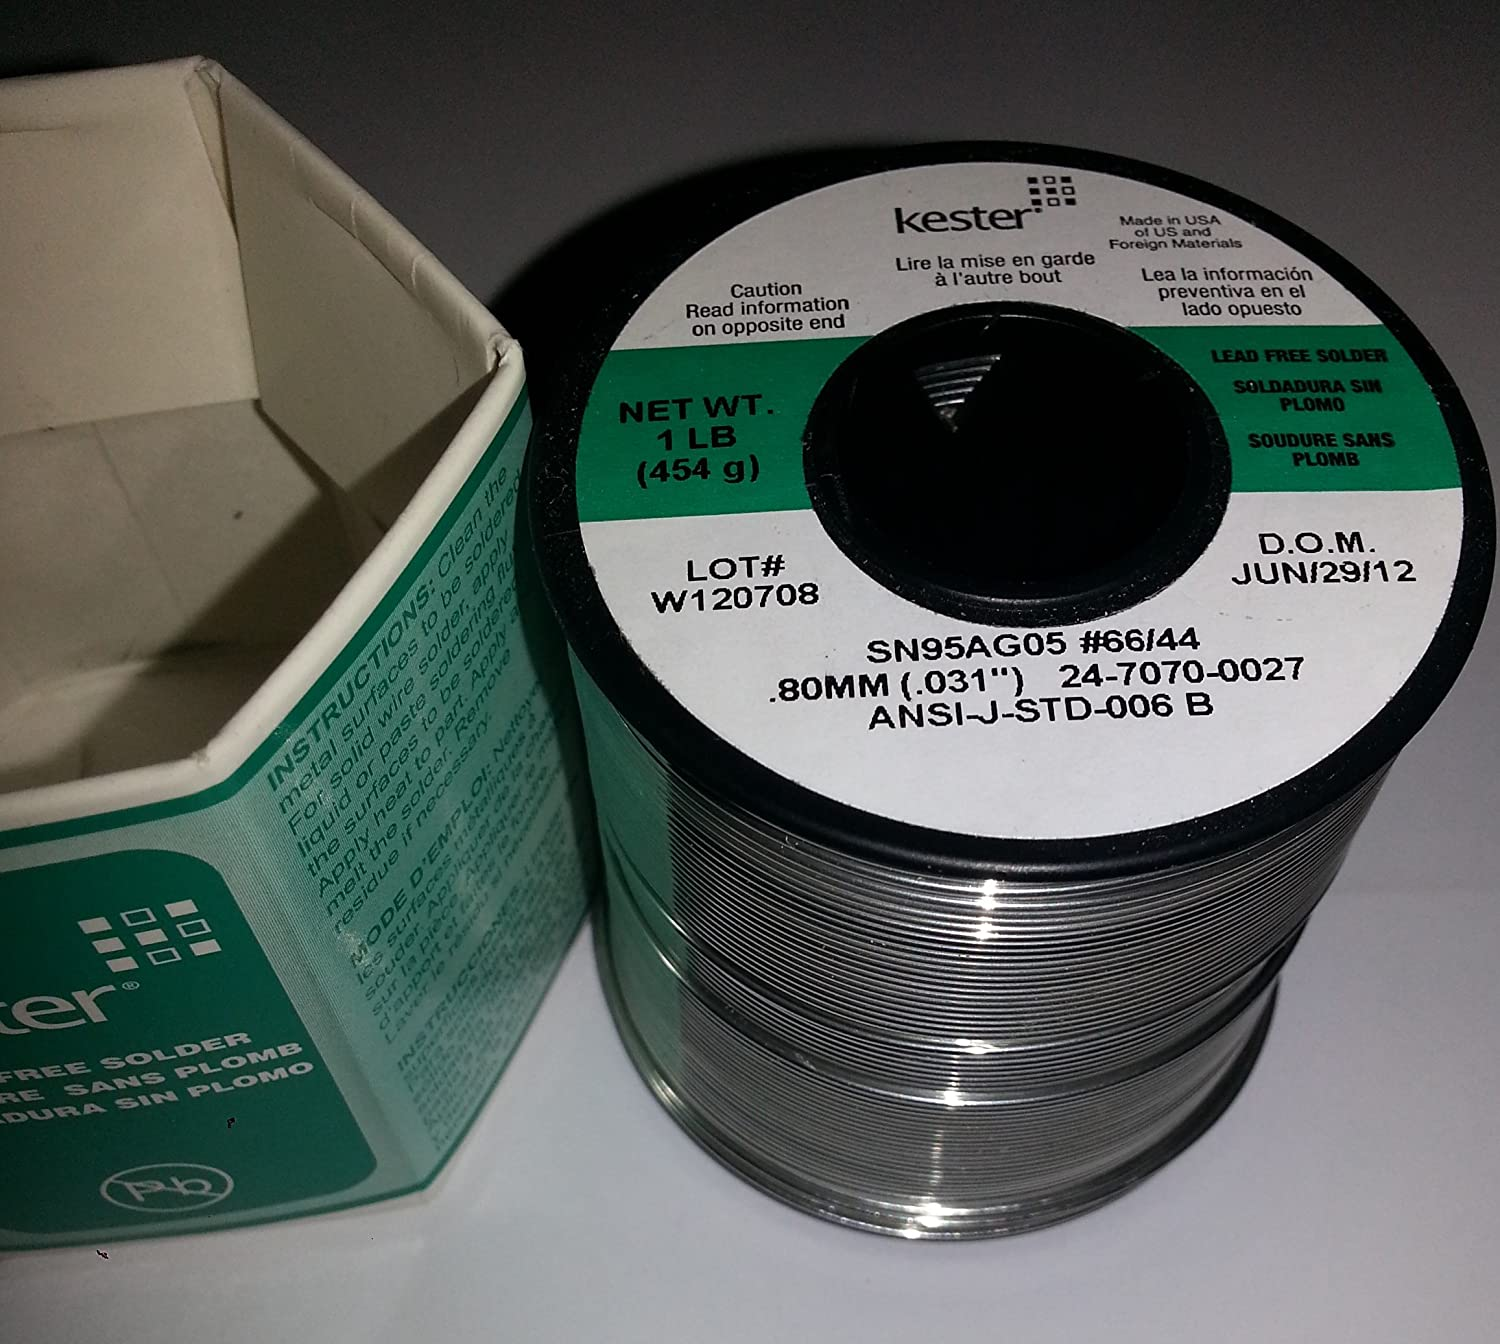 Kester 44 Activated Rosin Flux Core Lead-Free Solder Wire - 1 lb - 0.031 in Wire Diameter - Sn/Ag Compound - 24-7070-0027 [PRICE is per POUND]: Amazon.com: ...